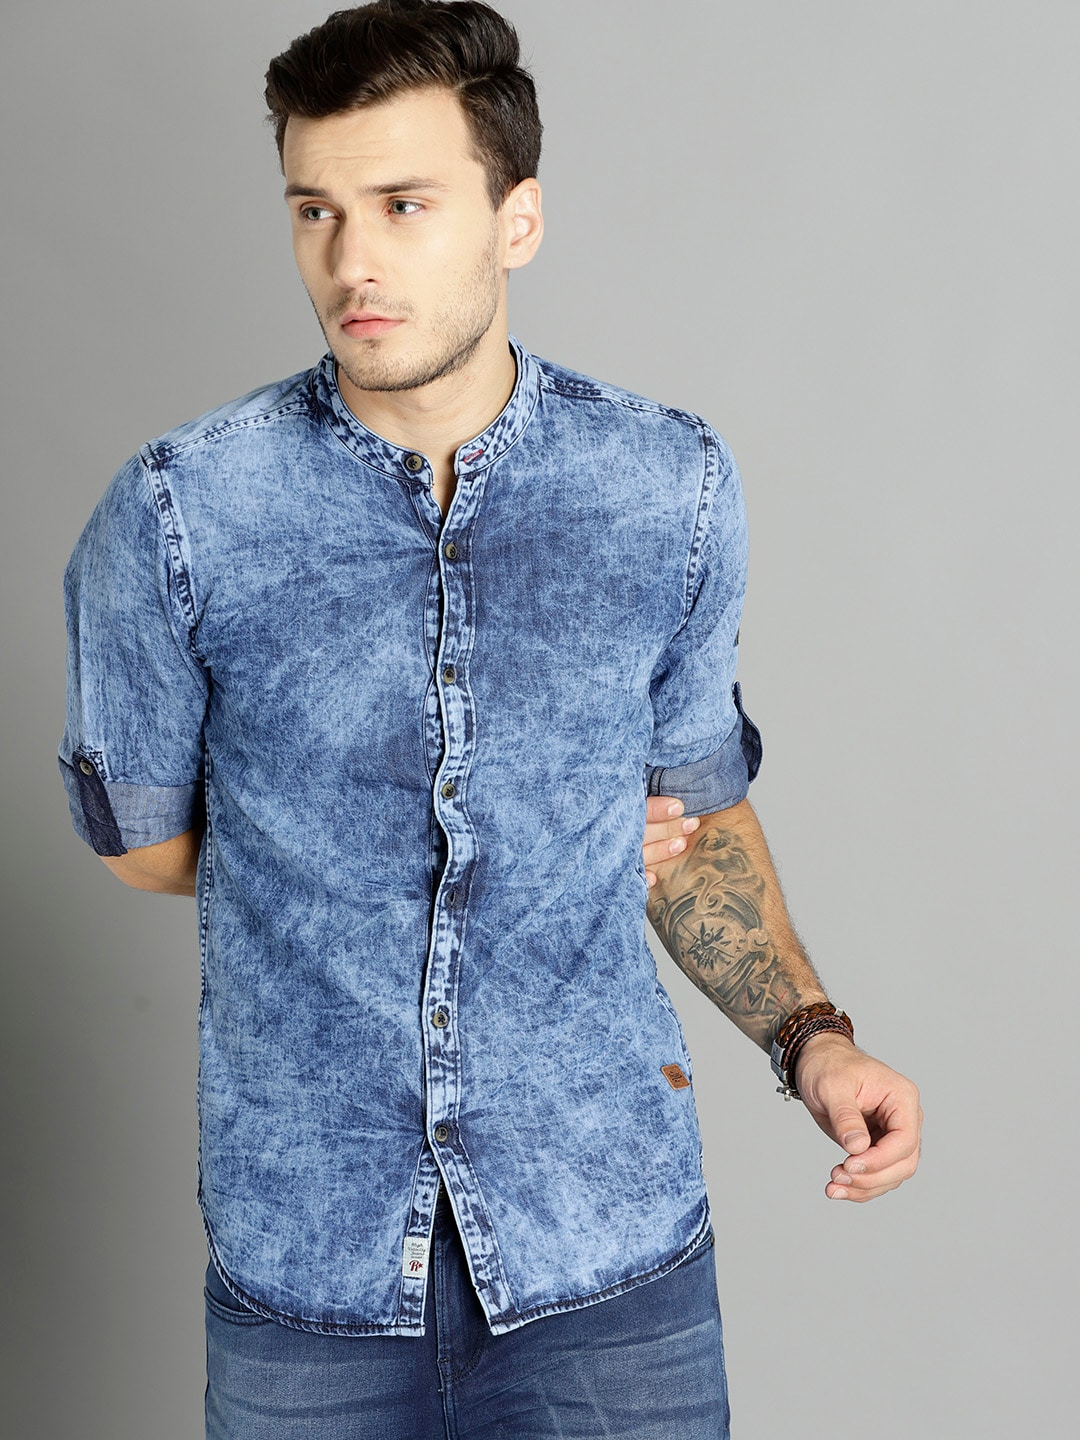 473cbfe4728 Teal Blue Shirts - Buy Teal Blue Shirts online in India